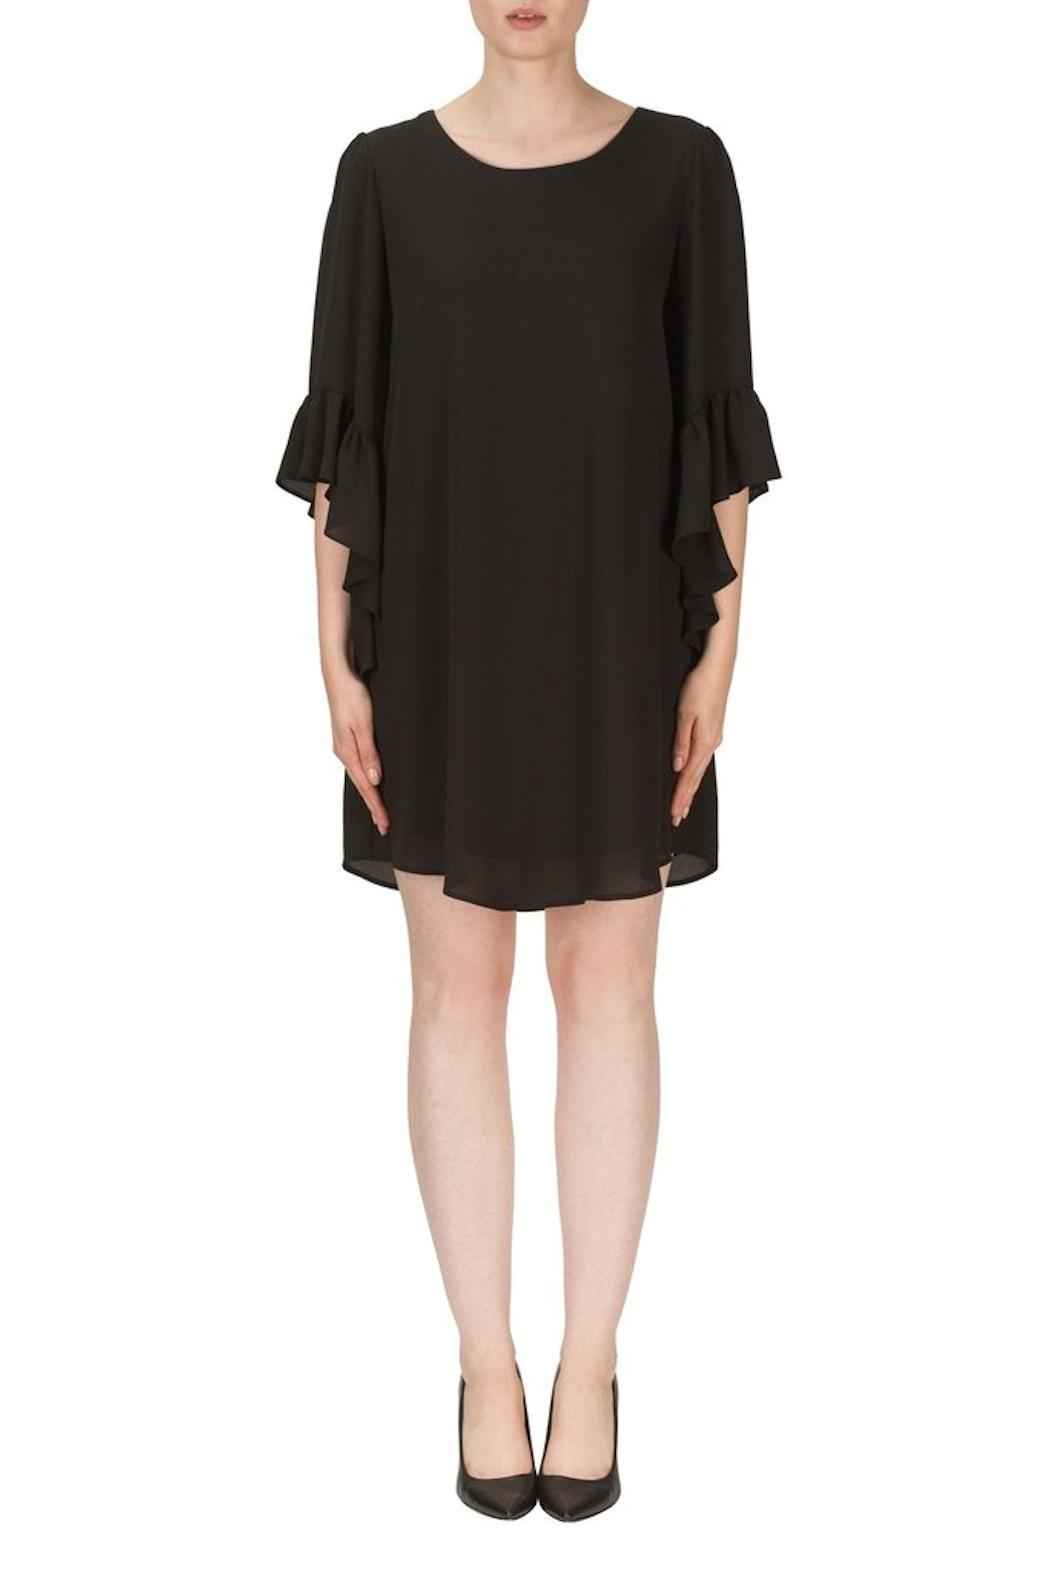 Joseph Ribkoff Black Dress - Main Image